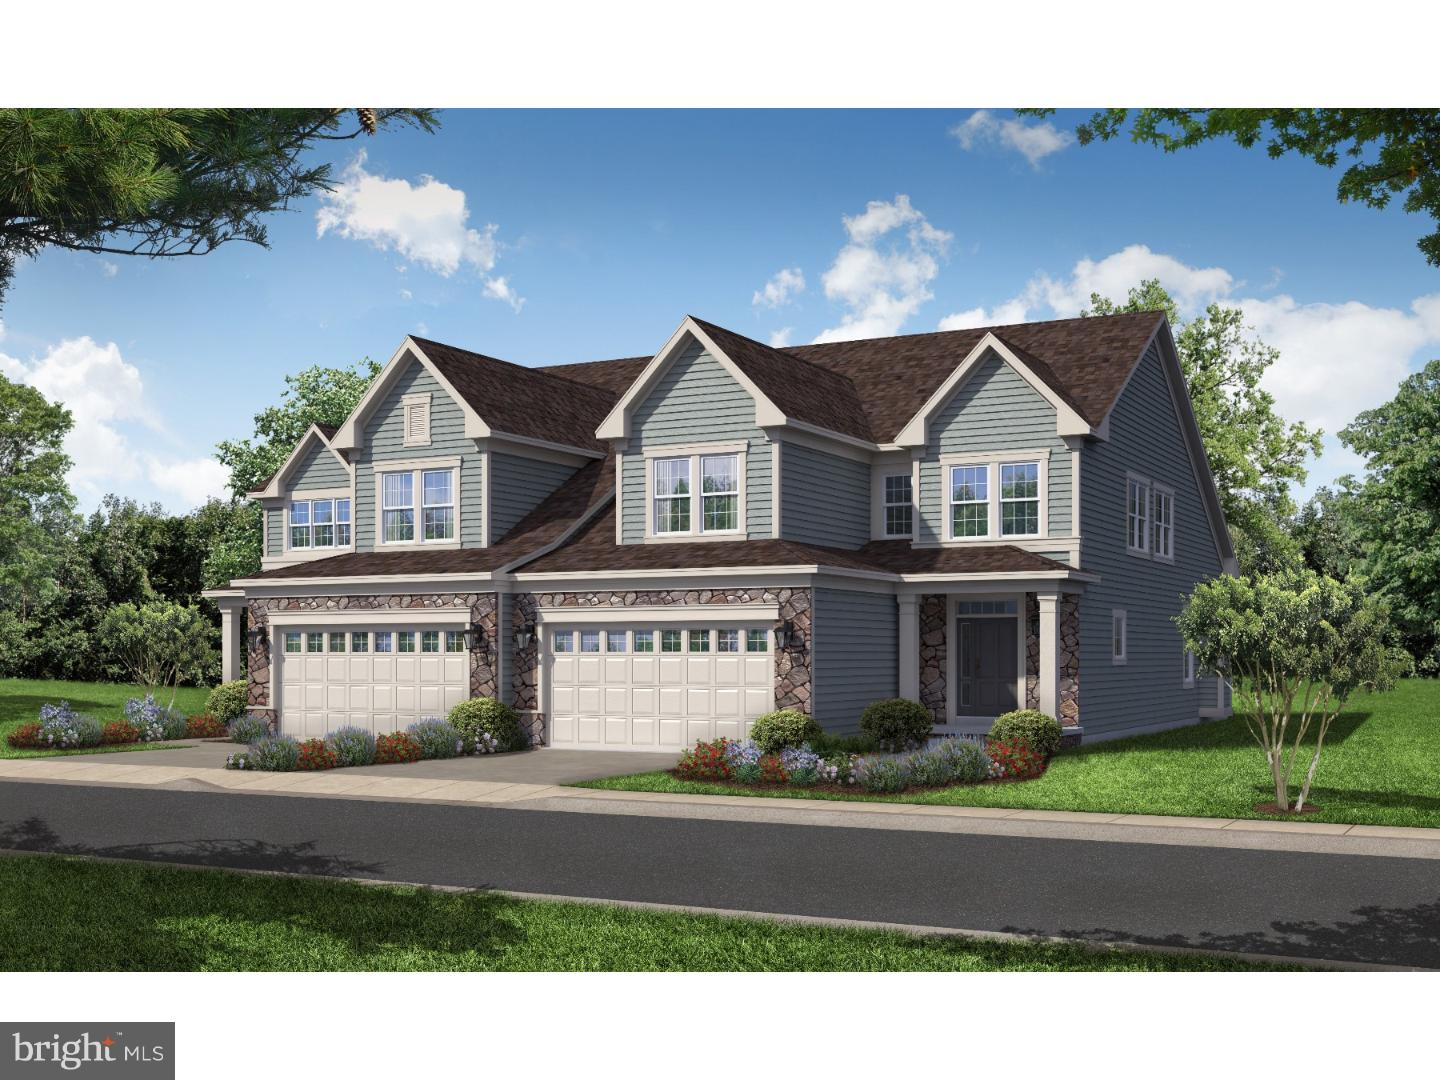 Lot 90 - BUILD YOUR KEATON FIRST FLOOR OWNER'S SUITE! Stop into our sales center in Westhampton, let